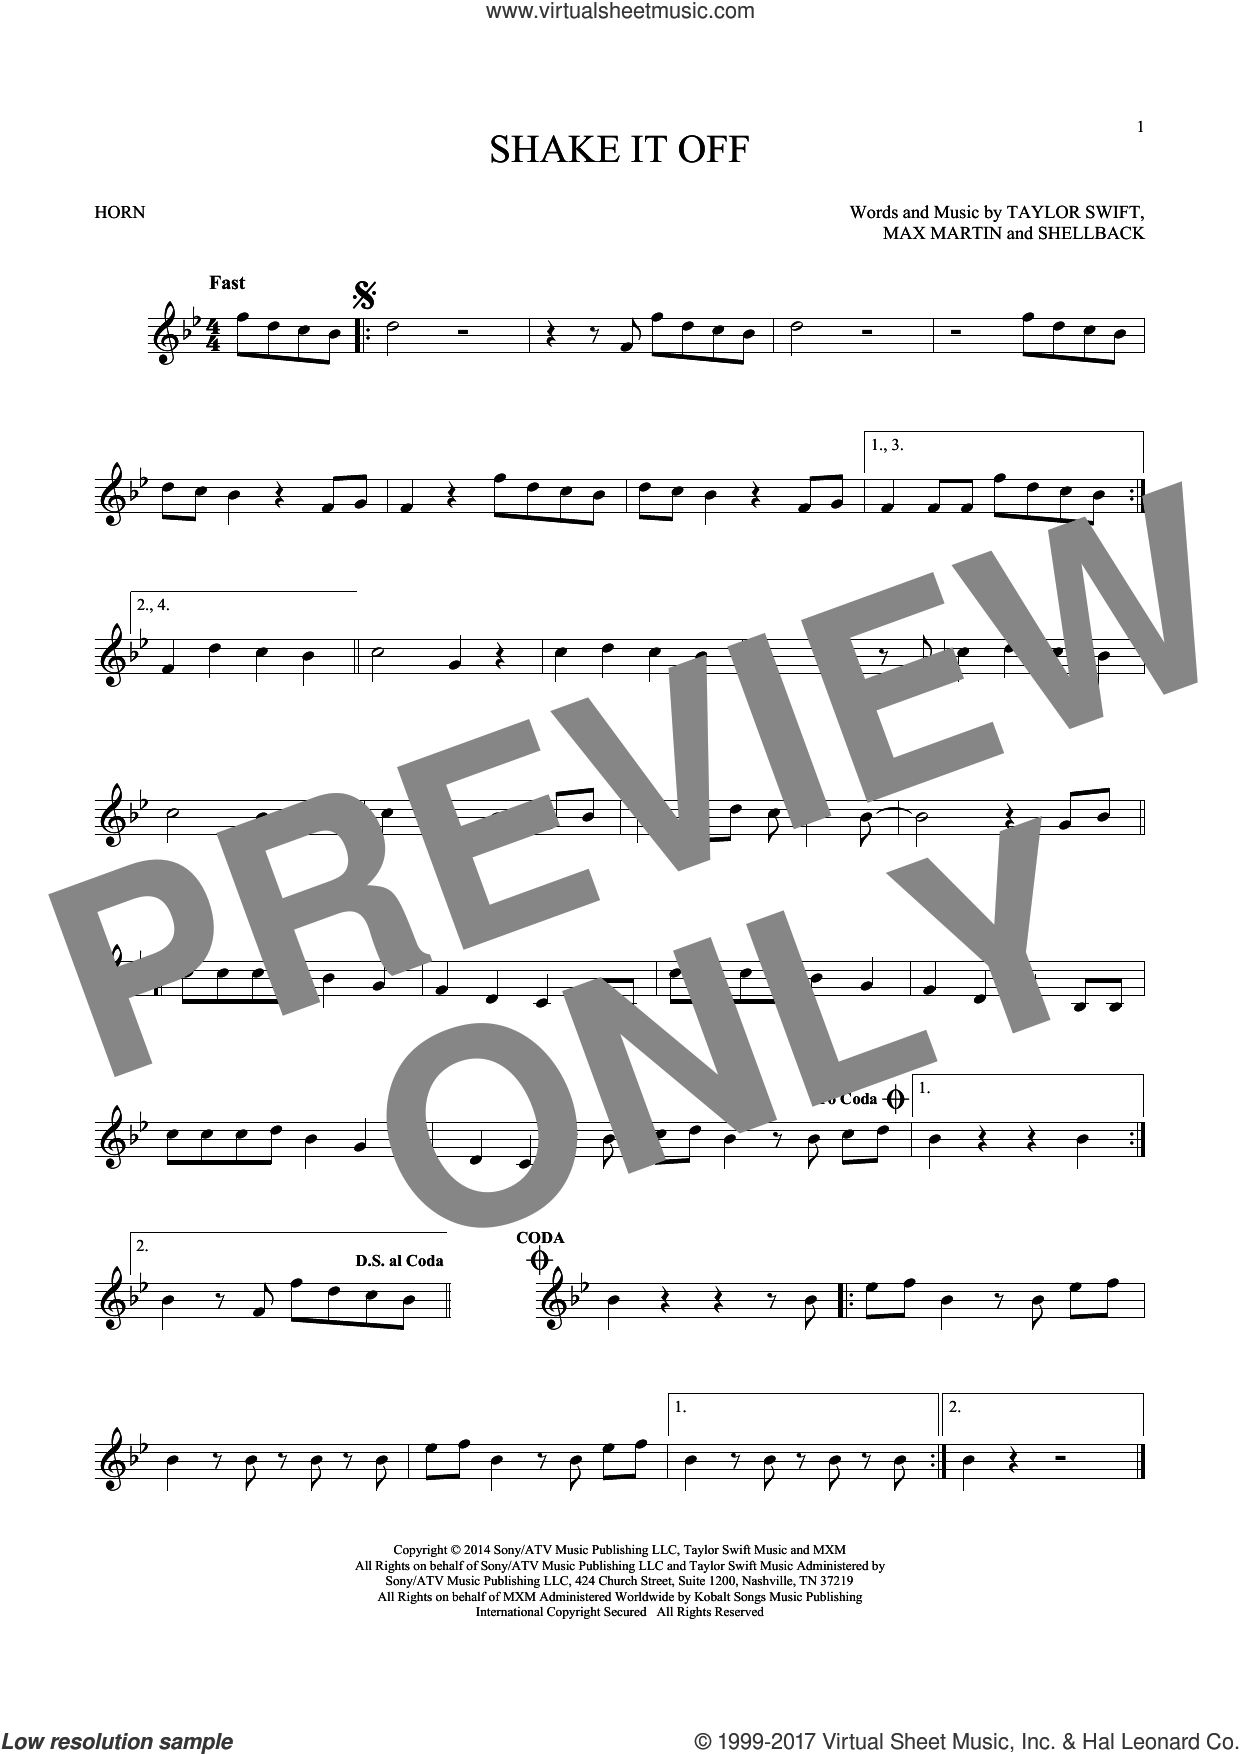 Shake It Off sheet music for horn solo by Taylor Swift, Johan Schuster, Max Martin and Shellback, intermediate. Score Image Preview.